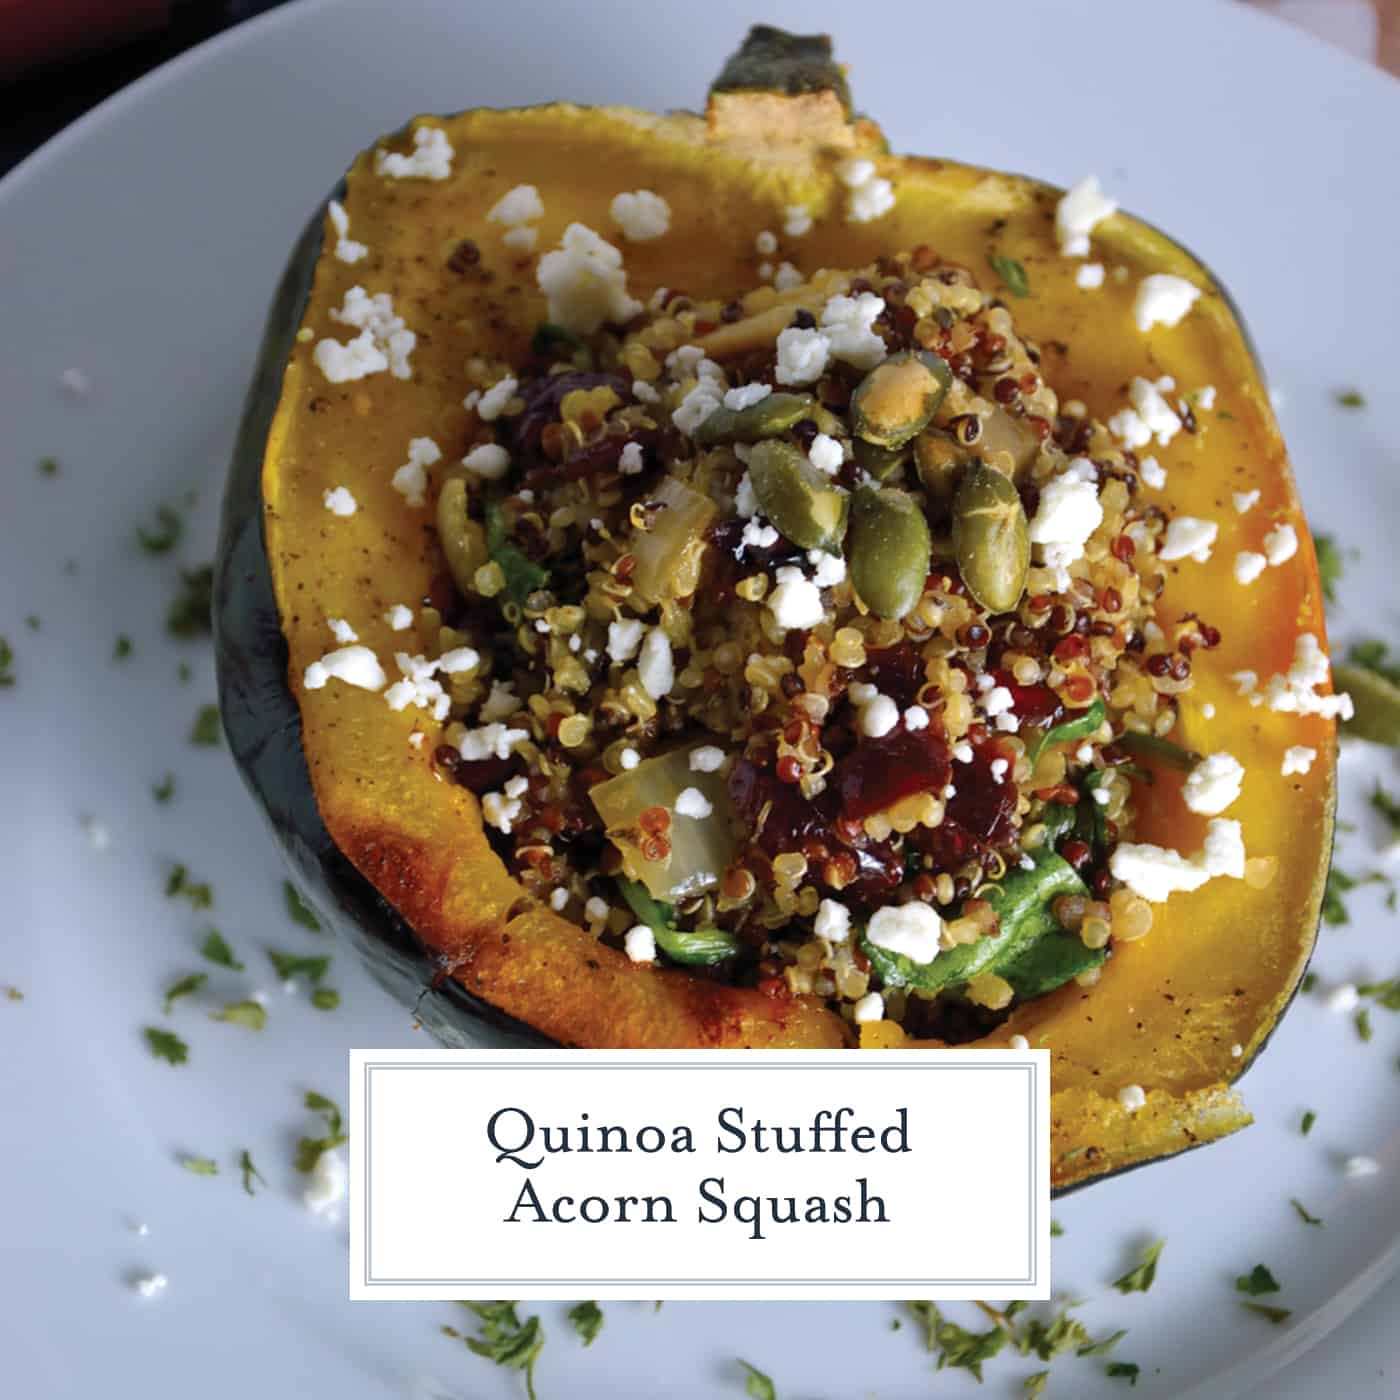 Quinoa Stuffed Acorn Squash is an amazing fall entree or side dish. Chicken sausage, cranberries, pepitas, and feta cheese make this recipe a winner. #quinoastuffedacornsquash #acornsquash #stuffedsquash www.savoryexperiments.com